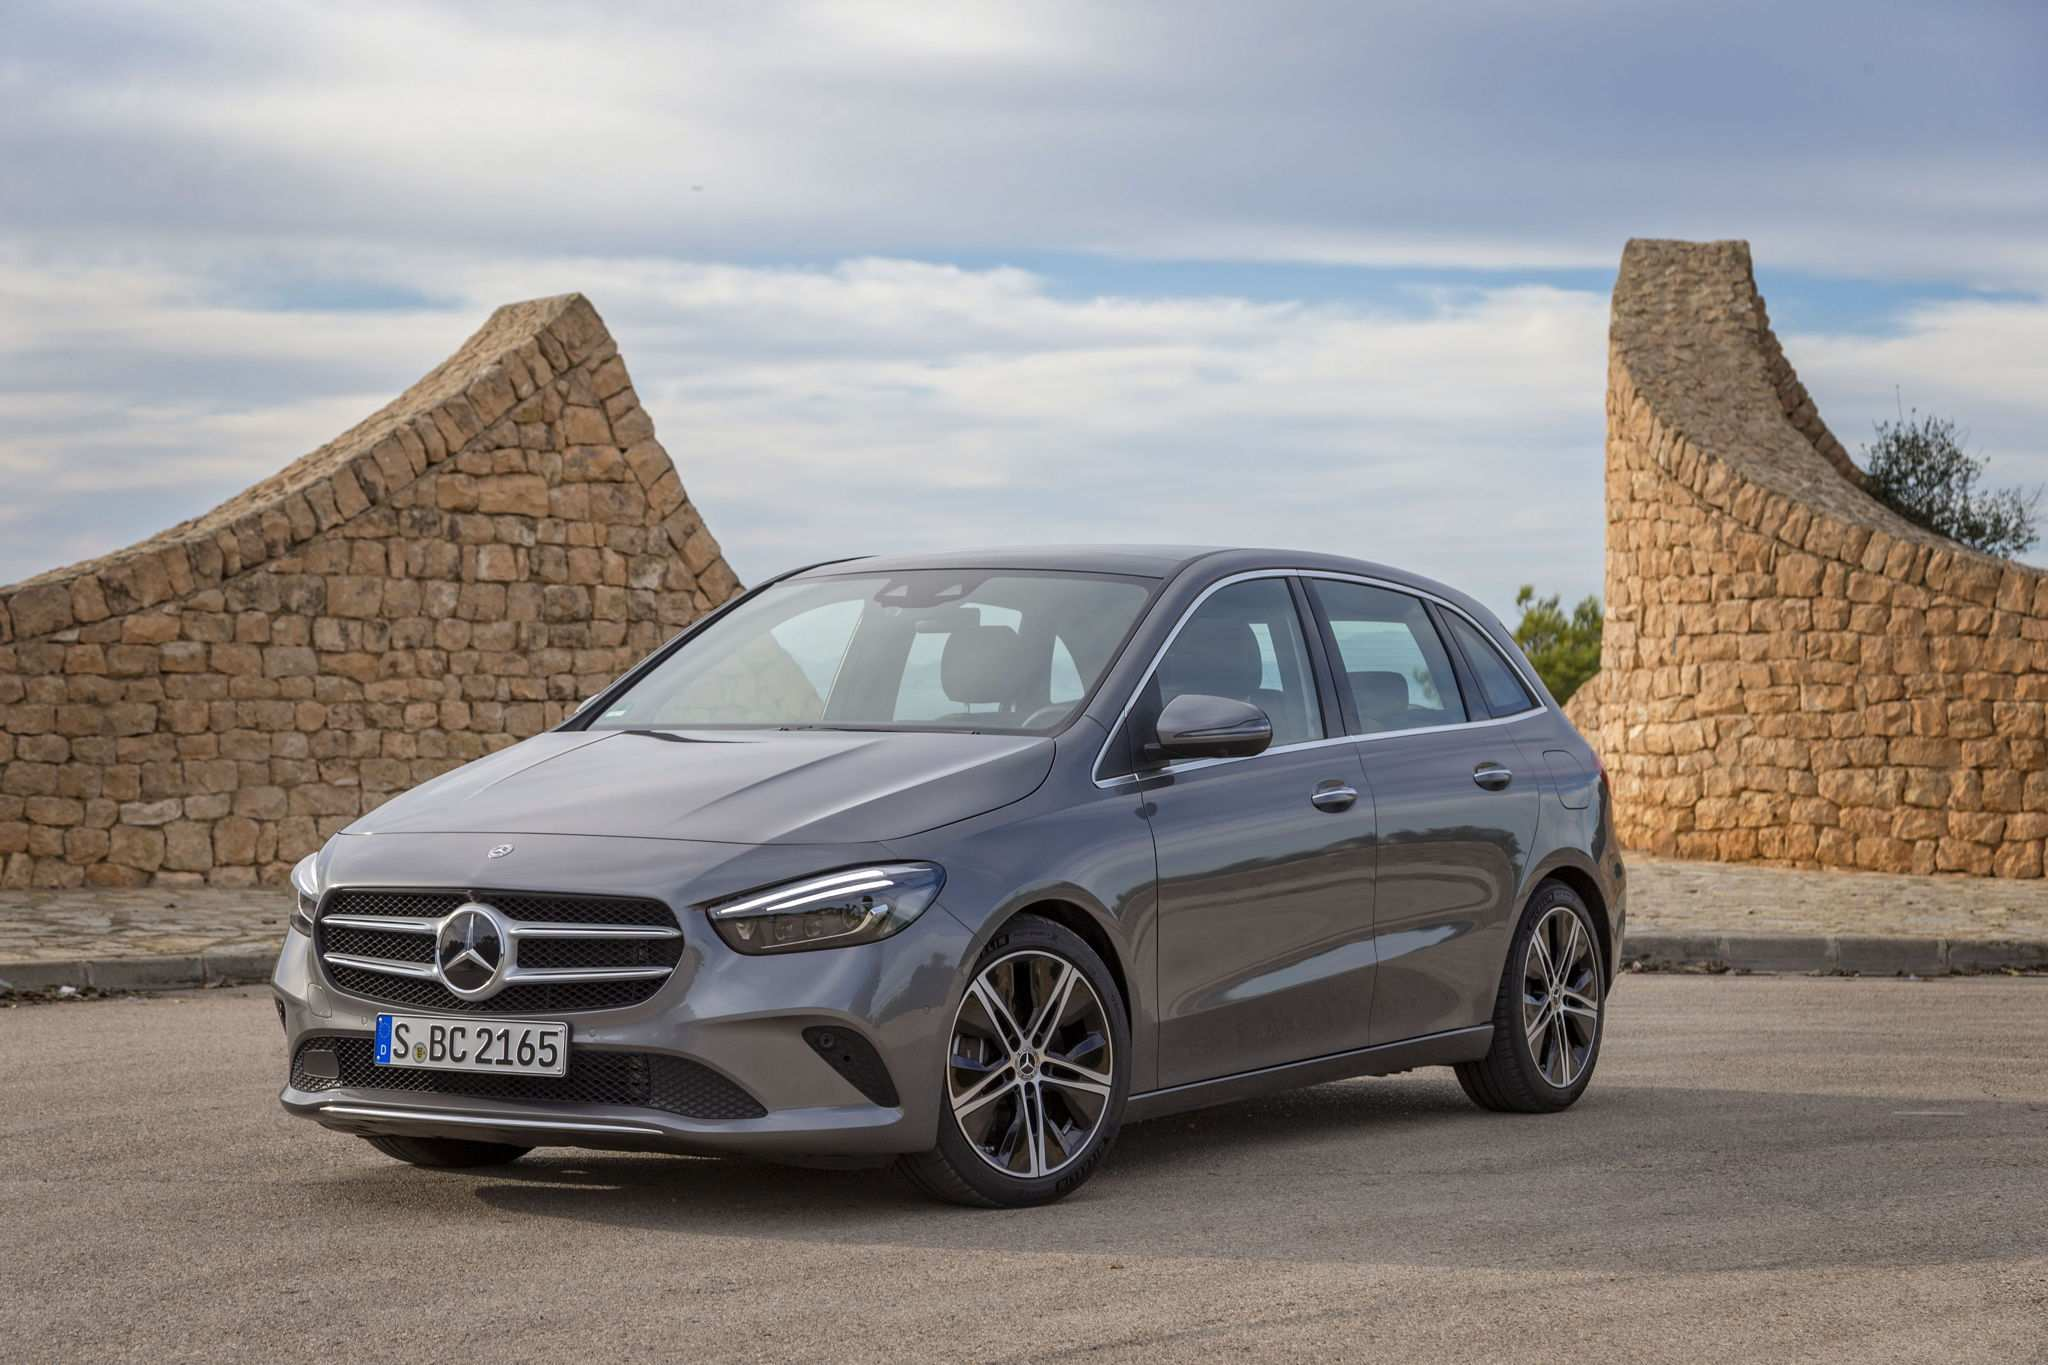 55 The Best Mercedes B Klasse 2019 Release Date And Concept